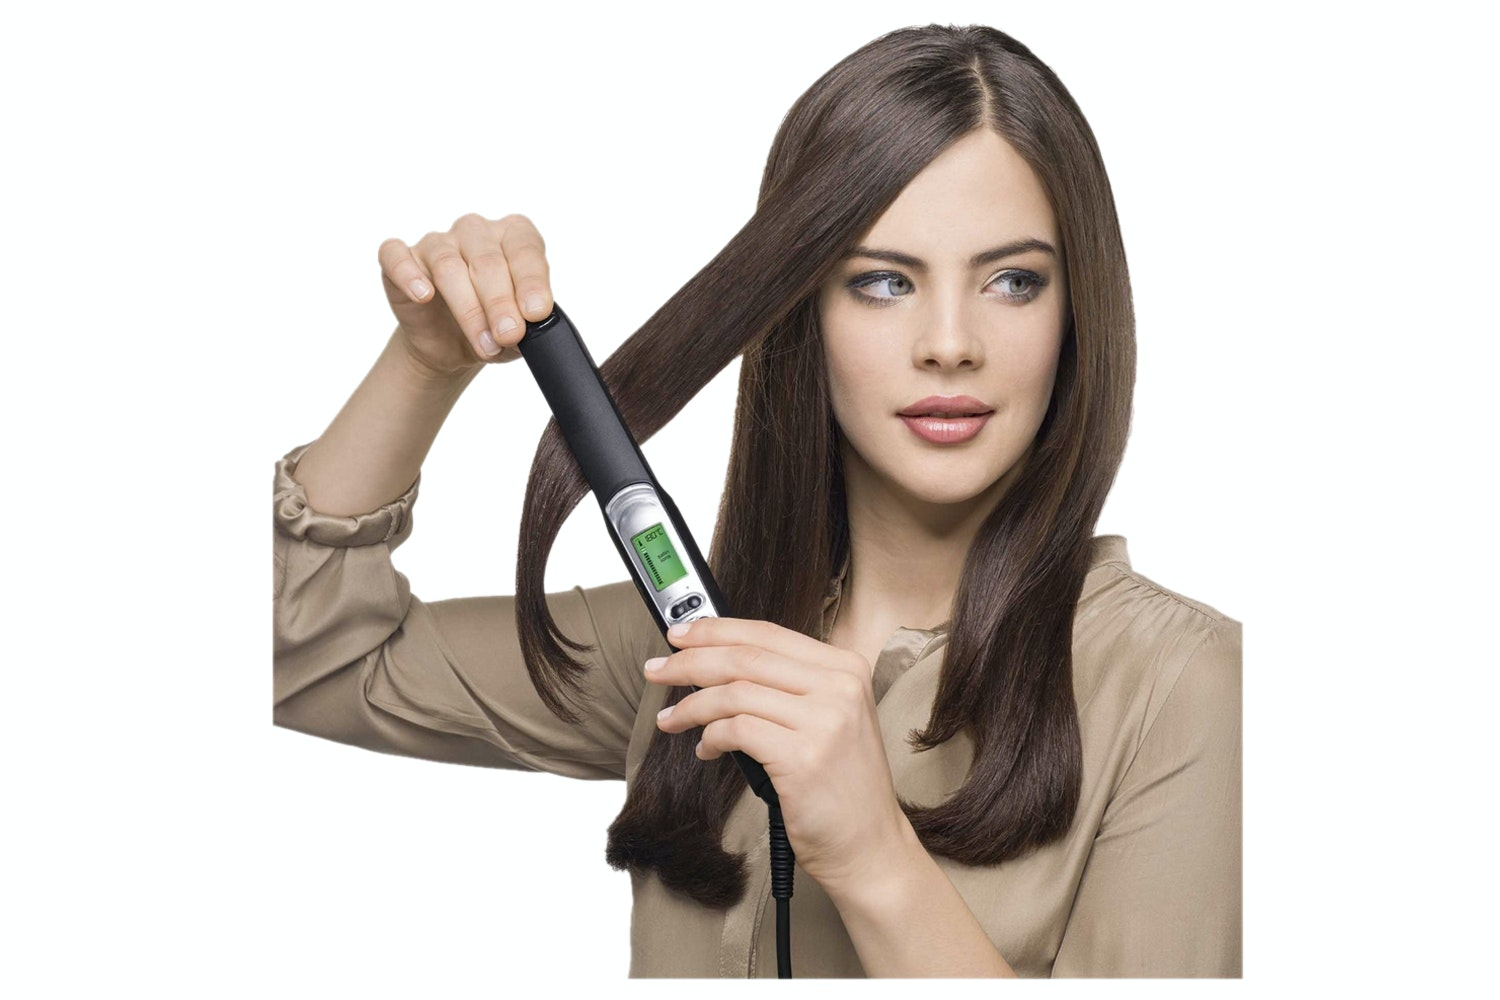 Braun Satin Hair 7 Iontec Straightener